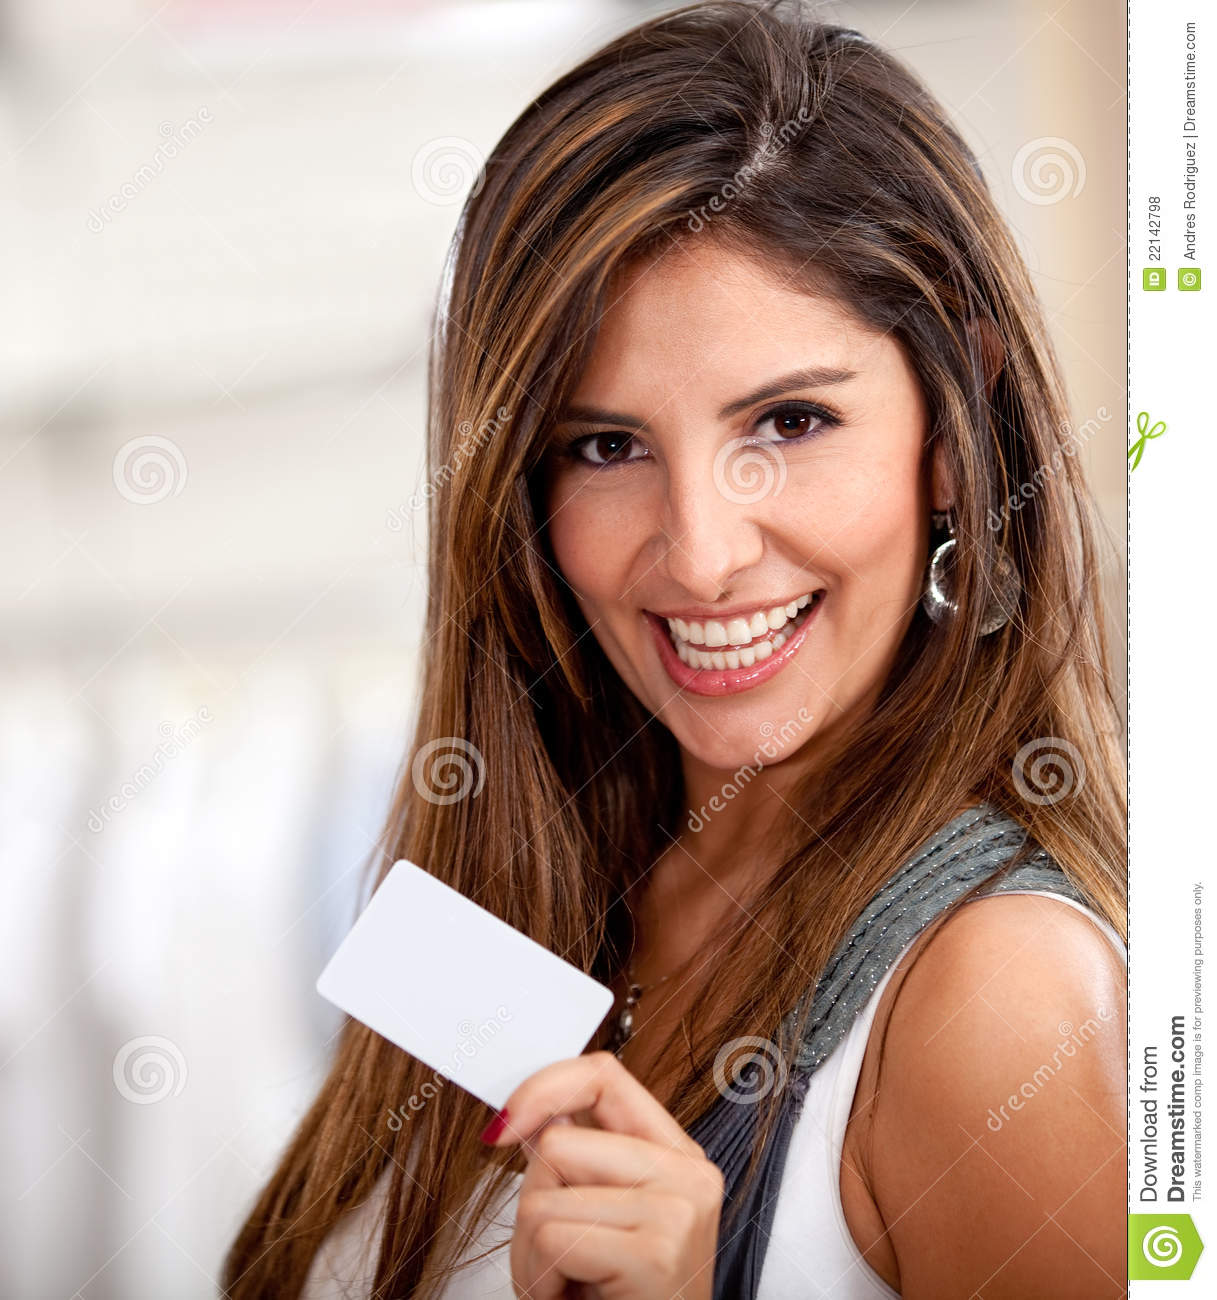 Woman With A Credit Card Royalty Free Stock Photos - Image: 22142798: dreamstime.com/royalty-free-stock-photos-woman-credit-card...